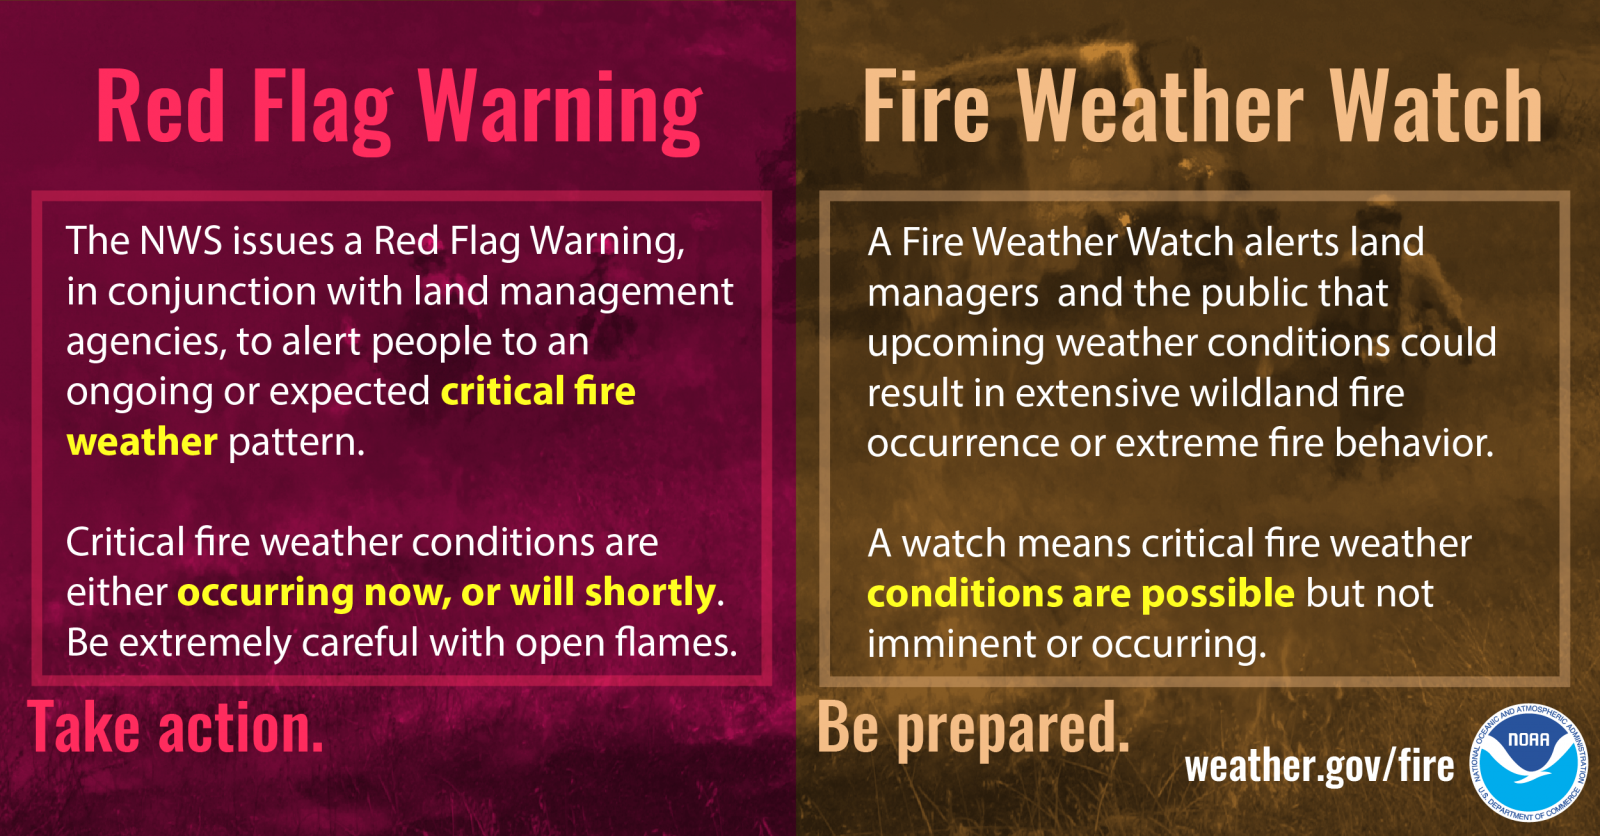 Fire Weather Watch vs. Red Flag Warning